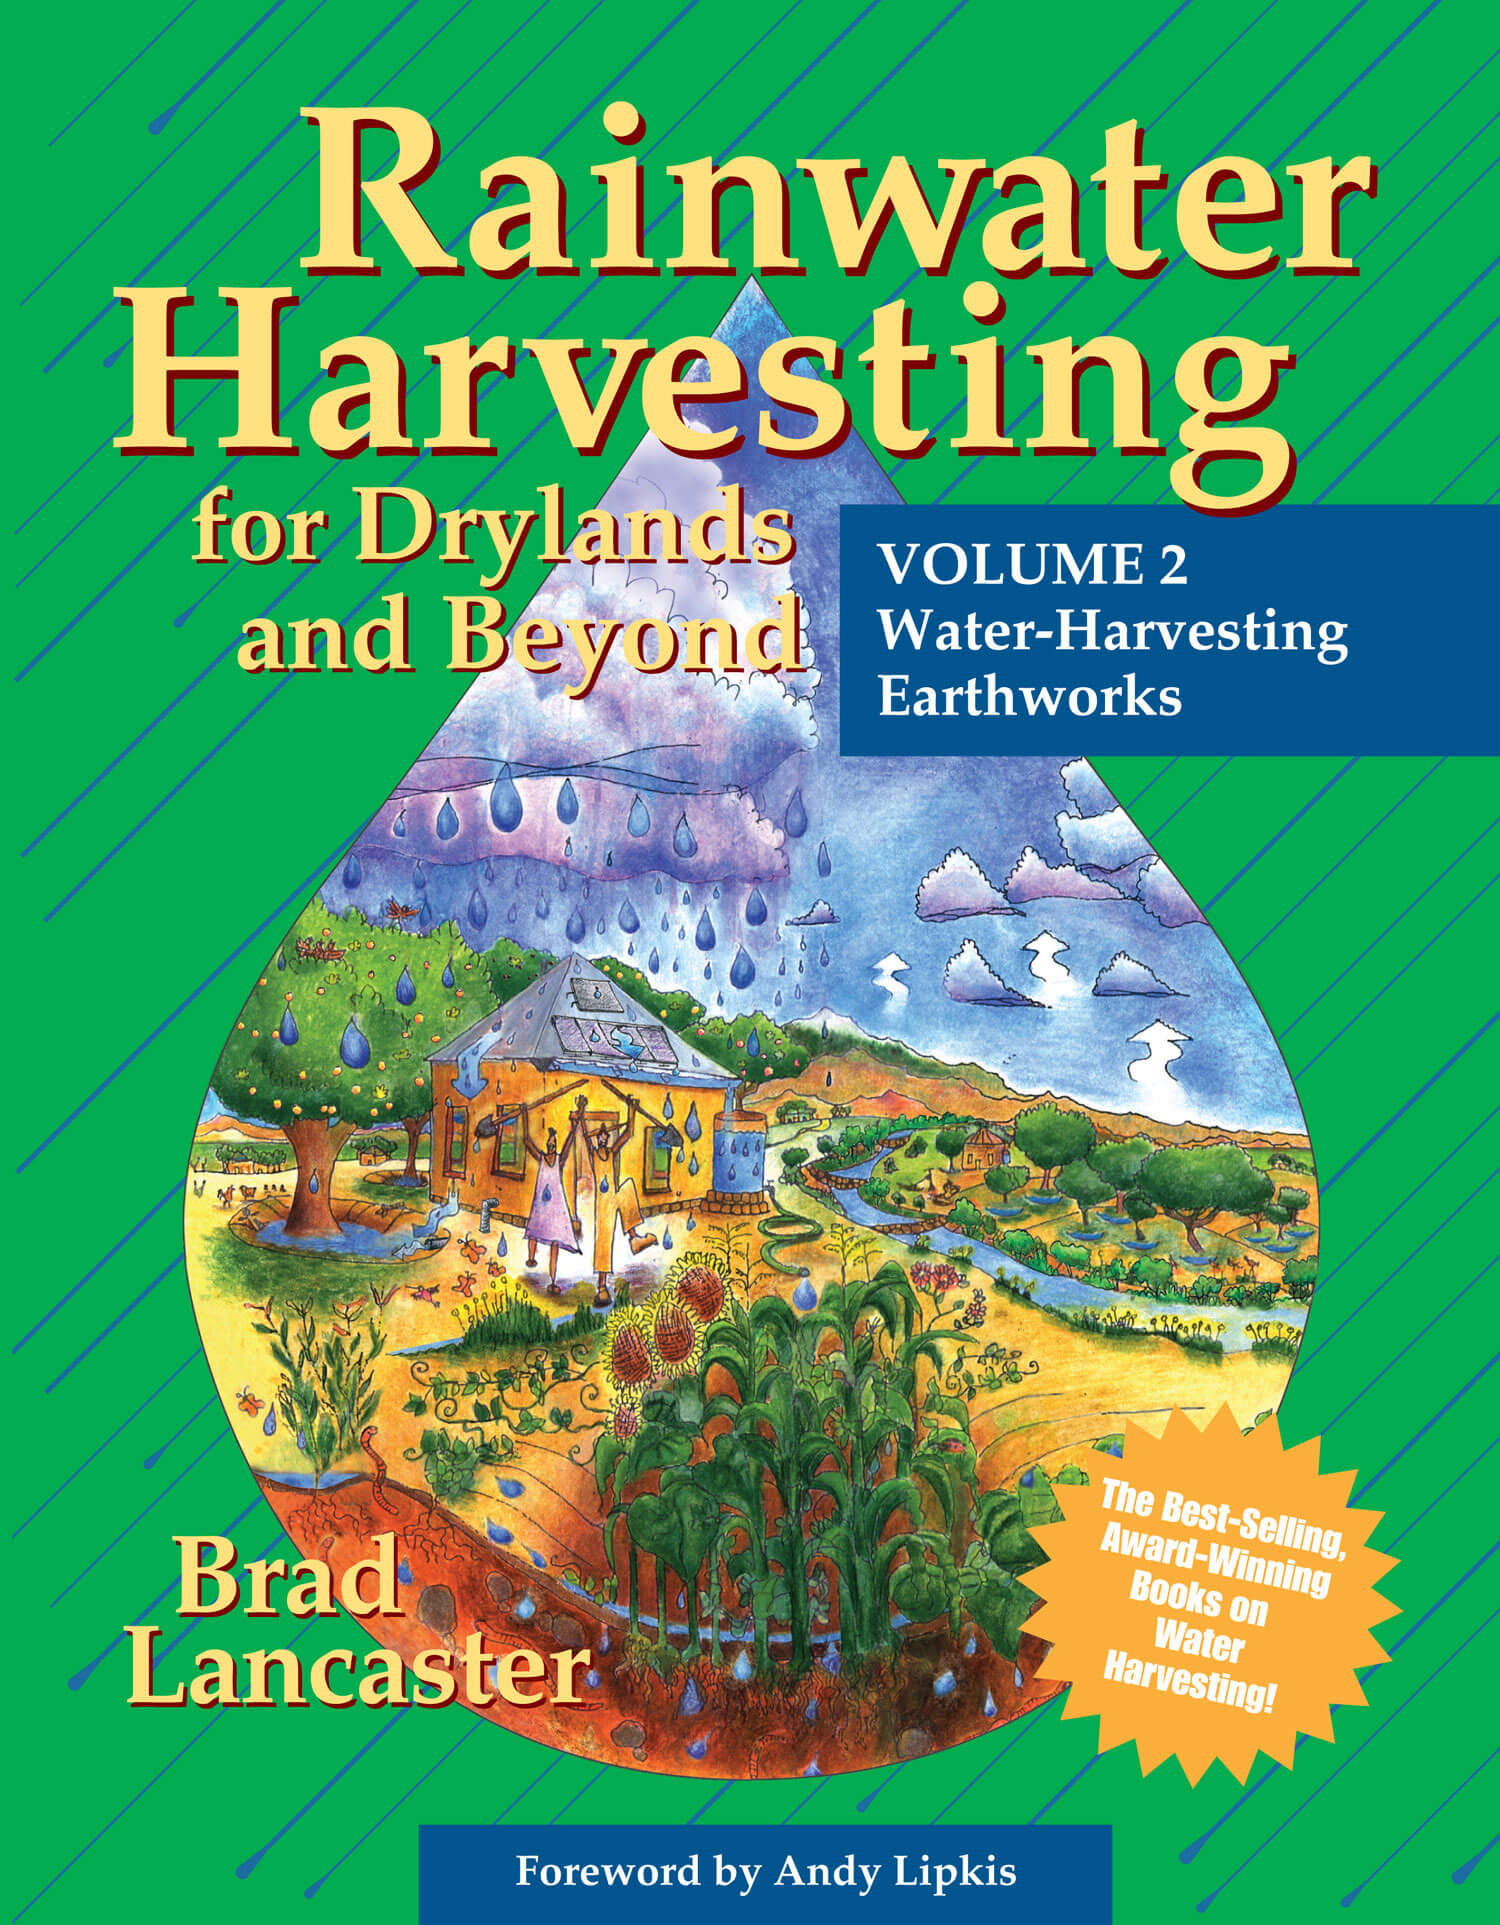 The Rainwater Harvesting for Drylands and Beyond